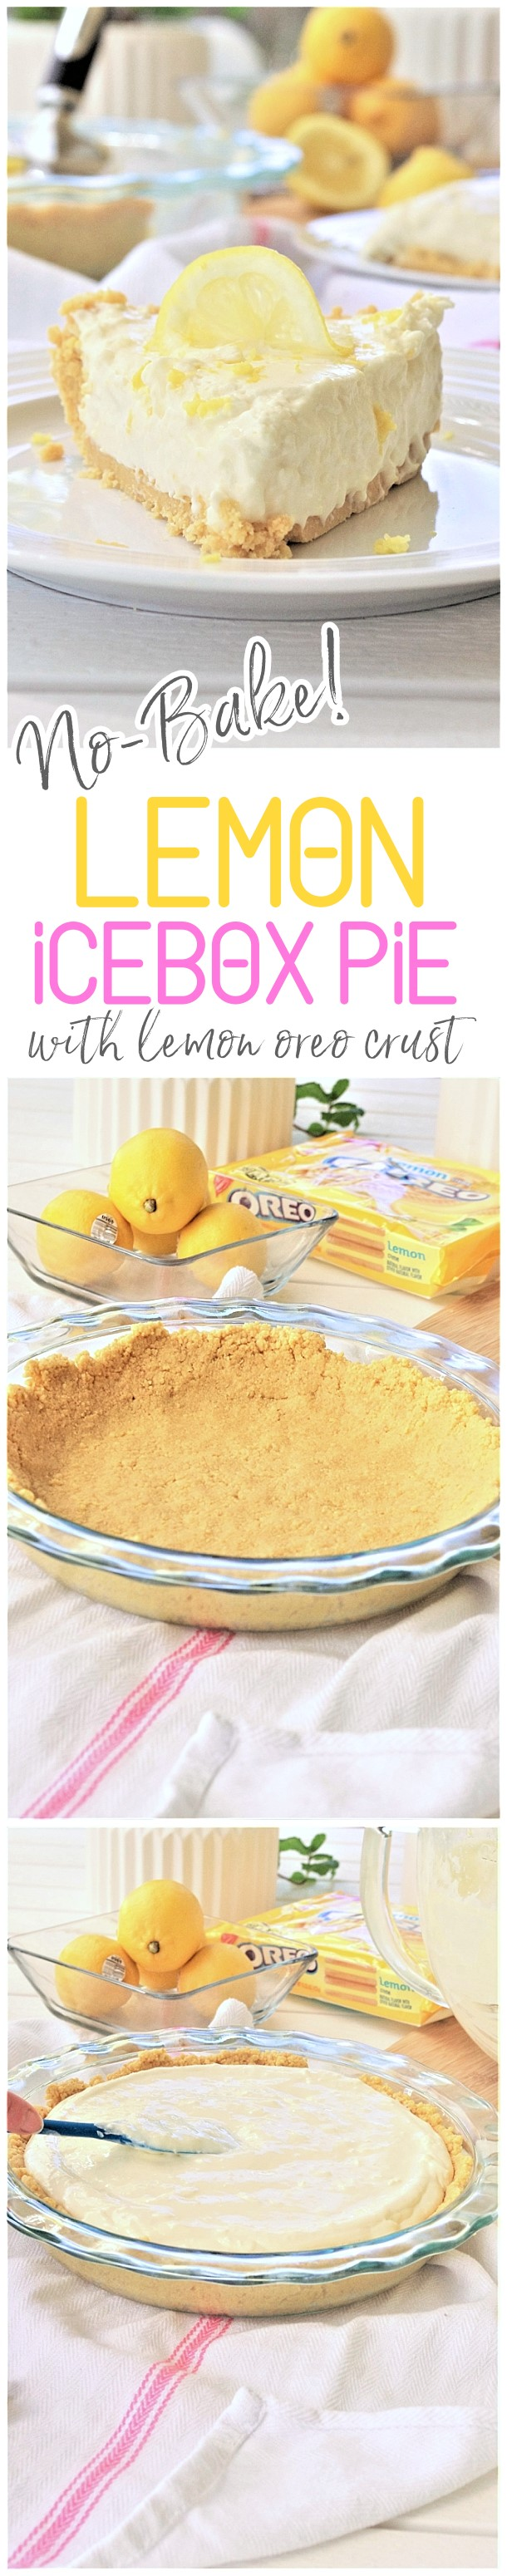 No Bake Lemon Oreo Crust Lemon Cheesecake Icebox Pie Pretty, Easy, Quick and Yummy Dessert Recipe - perfect for Mother's Day Brunch and Easter Dinners or any Spring or Summer Dinner or Holiday Party via Dreaming in DIY #lemondesserts #lemonrecipes #easylemonrecipes #lemon #lemontreats #easterdesserts #mothersdaydesserts #springdesserts #holidaydesserts #summerdesserts